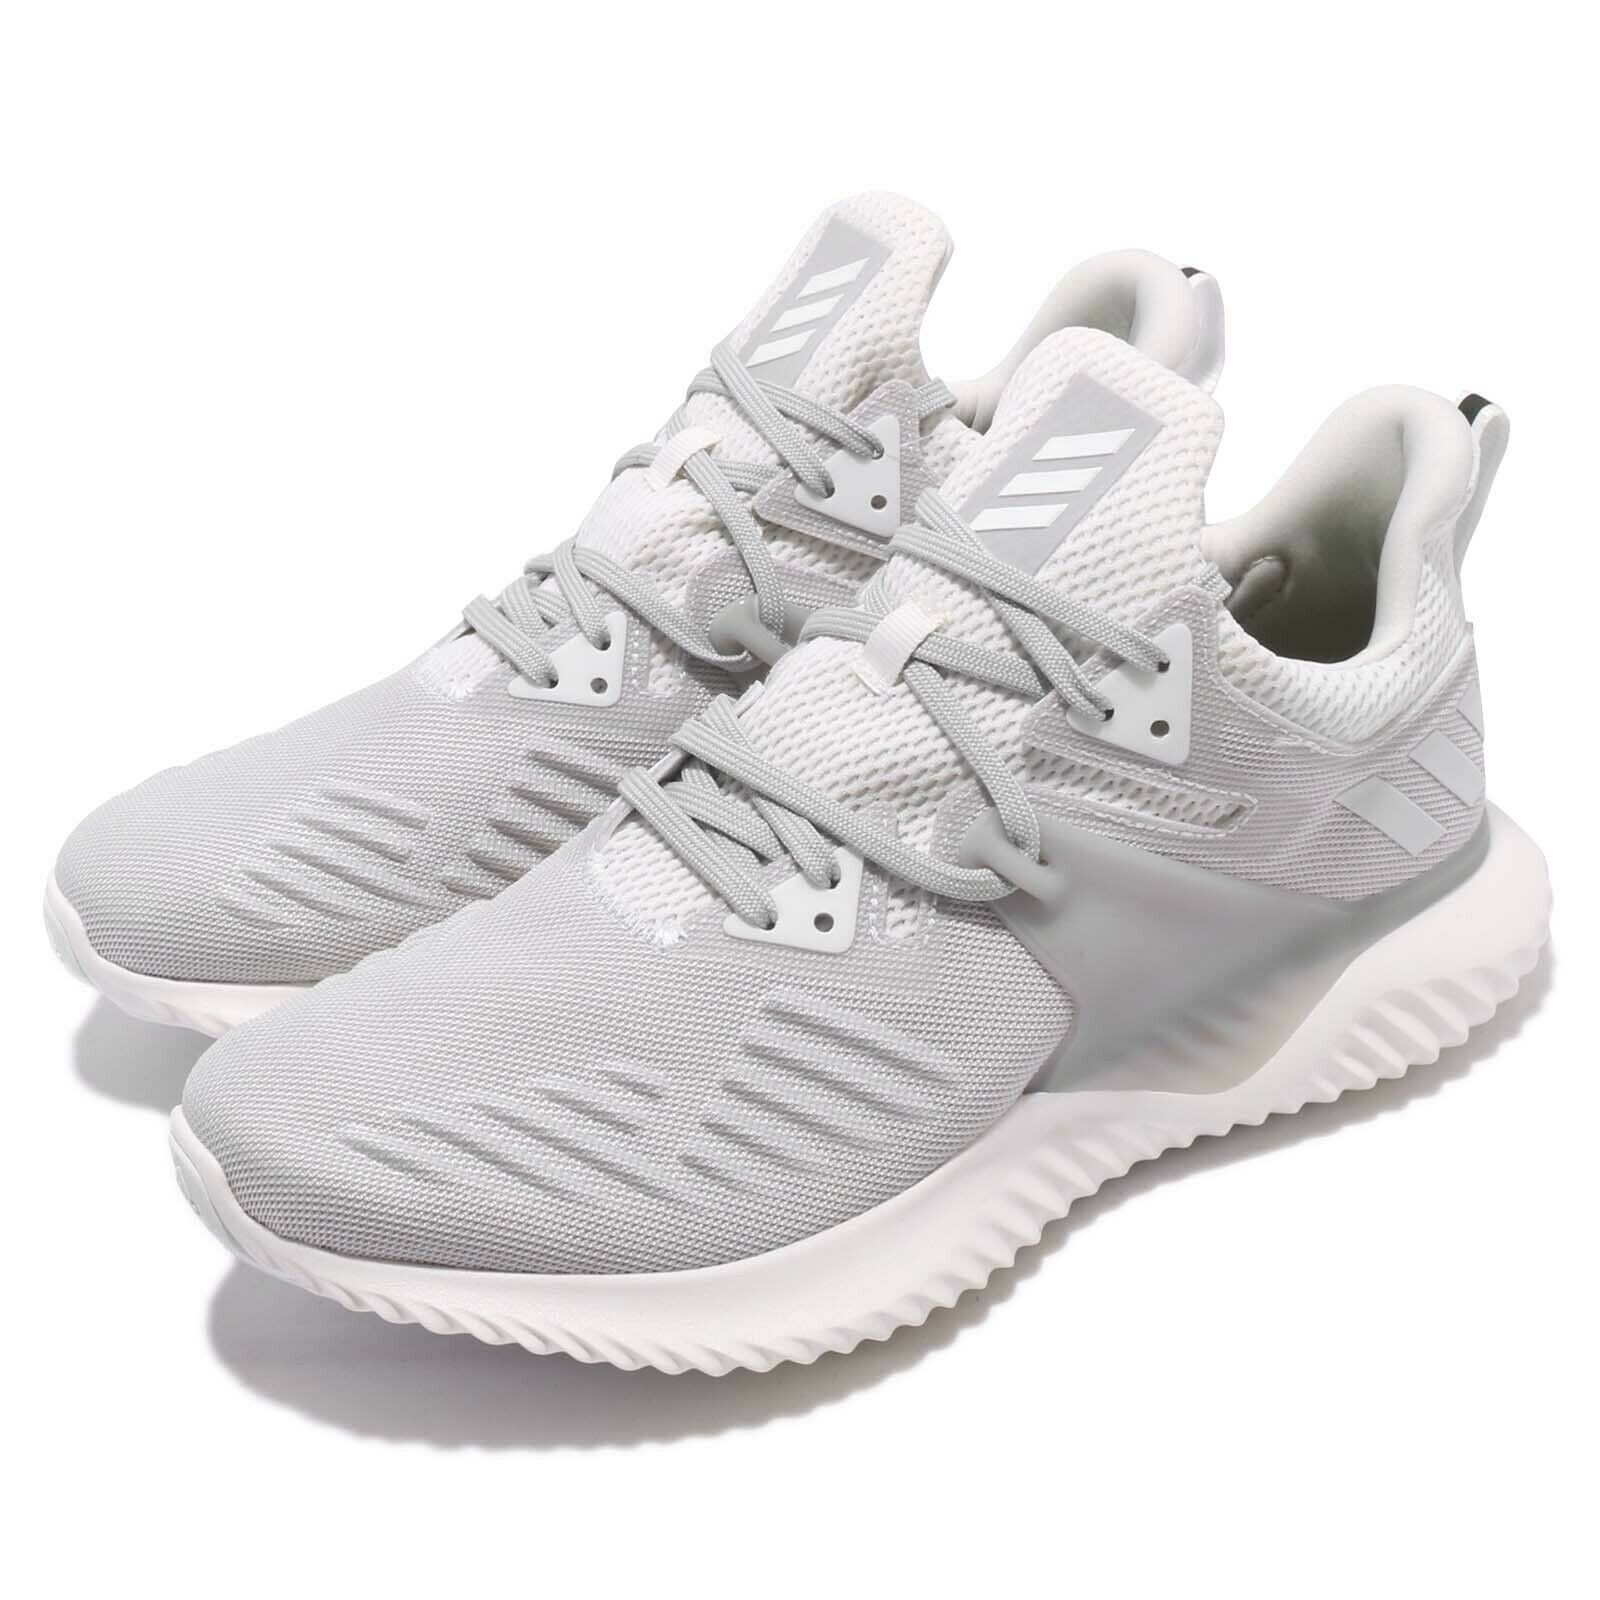 4b2066c8d7a7a Adidas AlphaBOUNCE Beyond 2 M White Grey Men Running shoes Sneakers BD7095